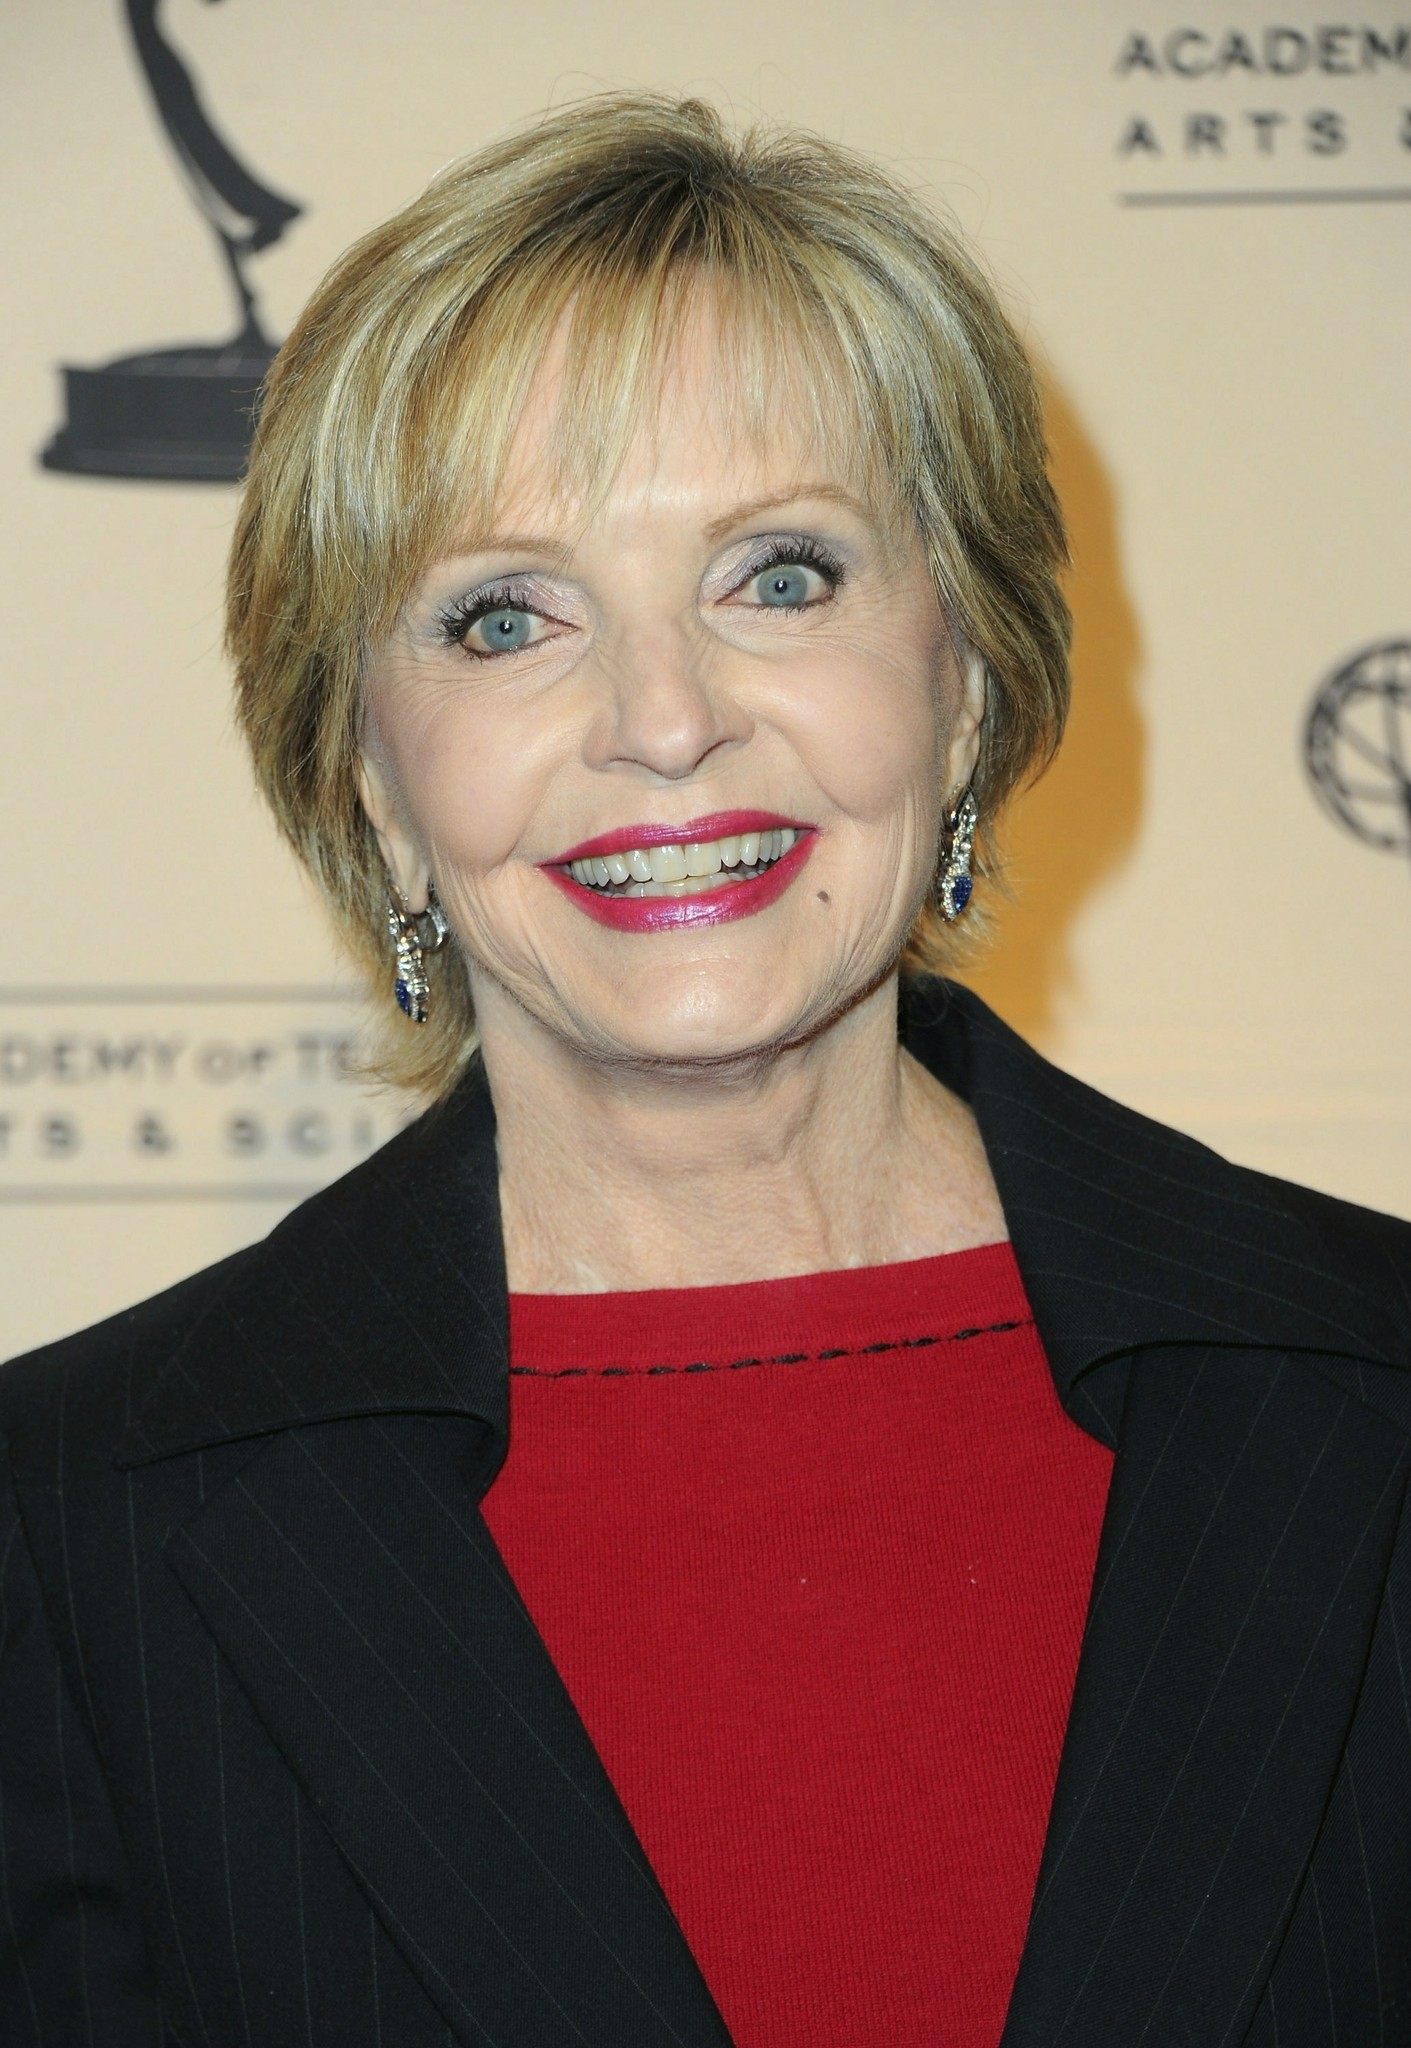 Pictures: Cruise ship godmothers - Florence Henderson